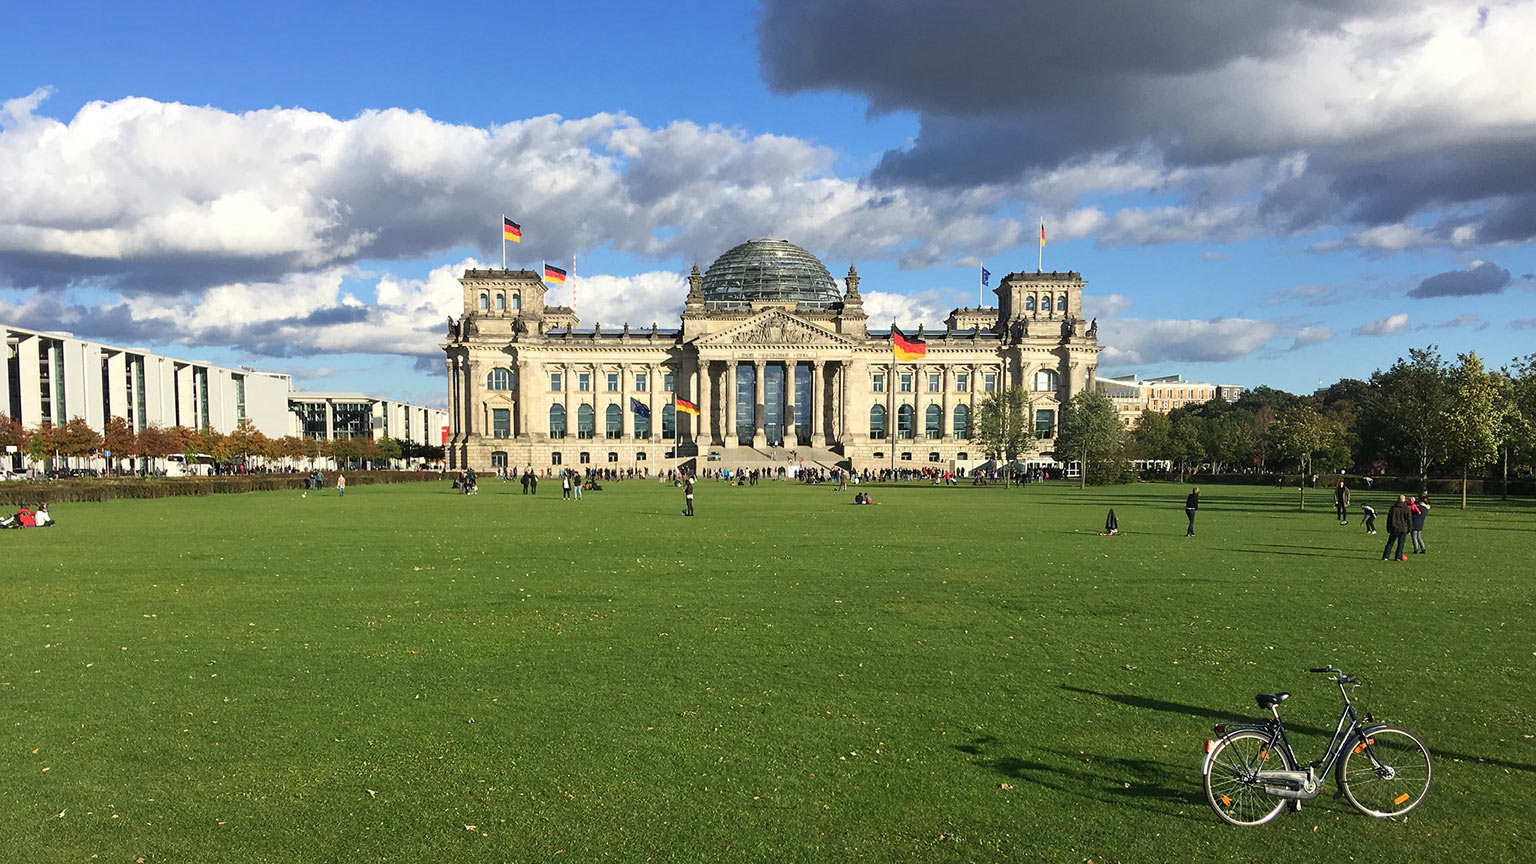 Eastern-Europe-Reichstag-Flickr-Whatknot